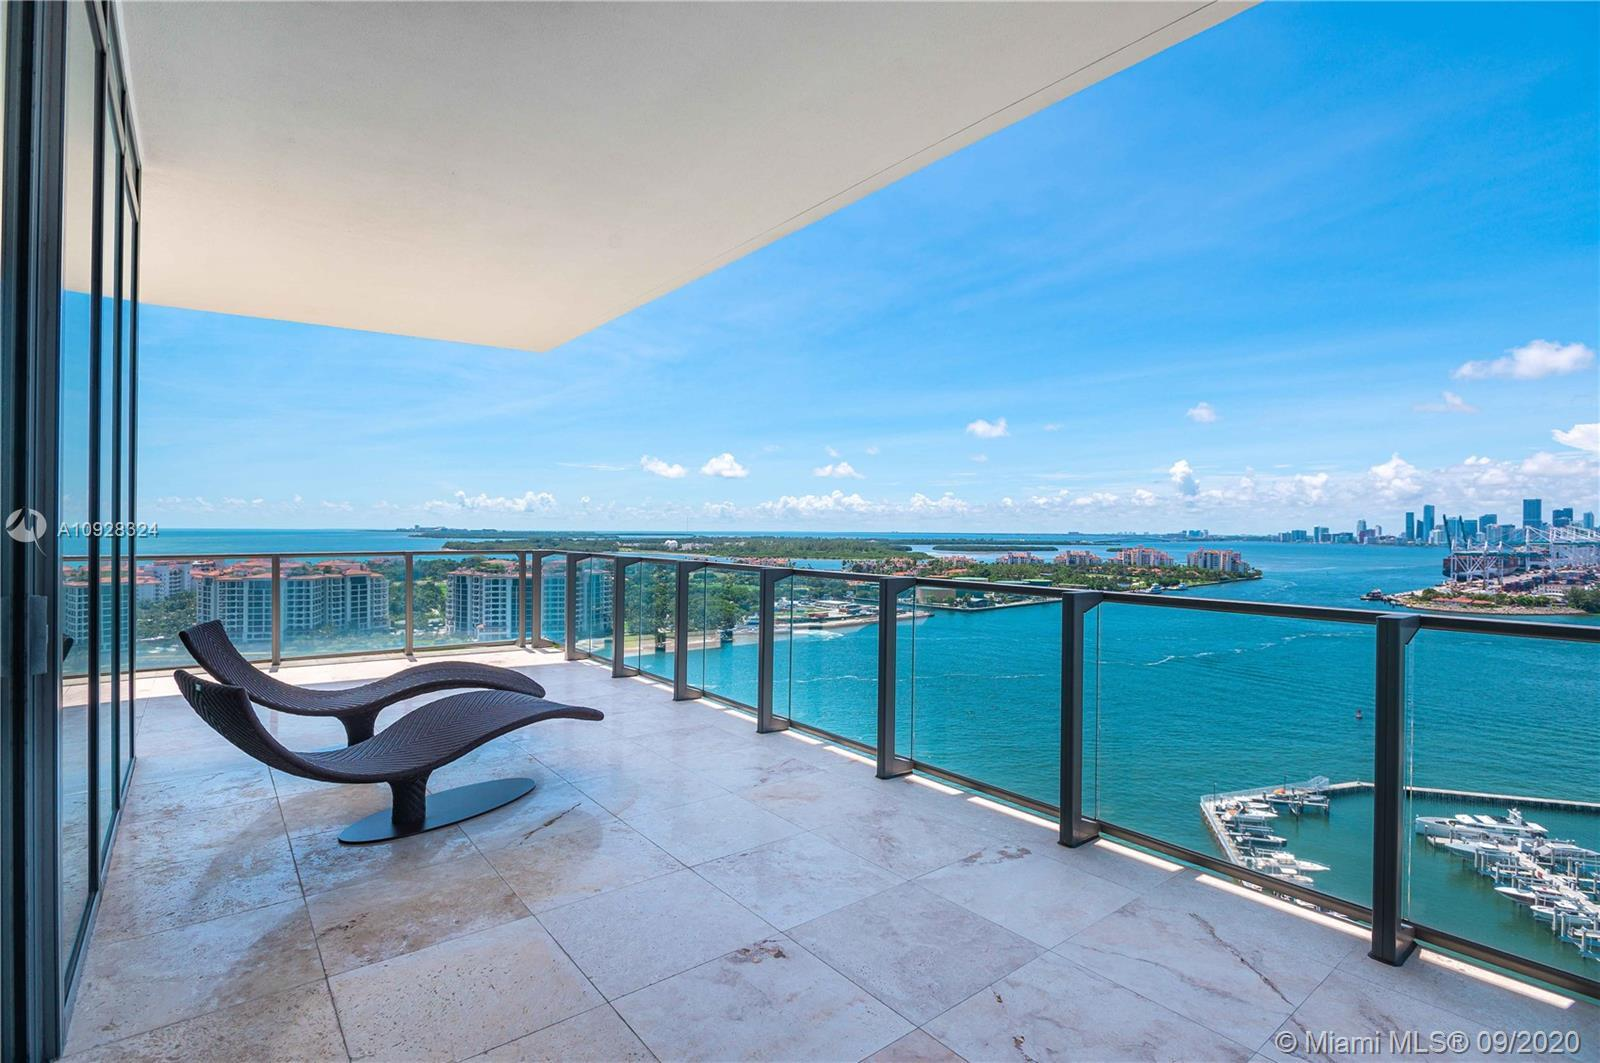 Welcome to one of the most coveted luxury high rise buildings in Miami Beach...Apogee! This unit was